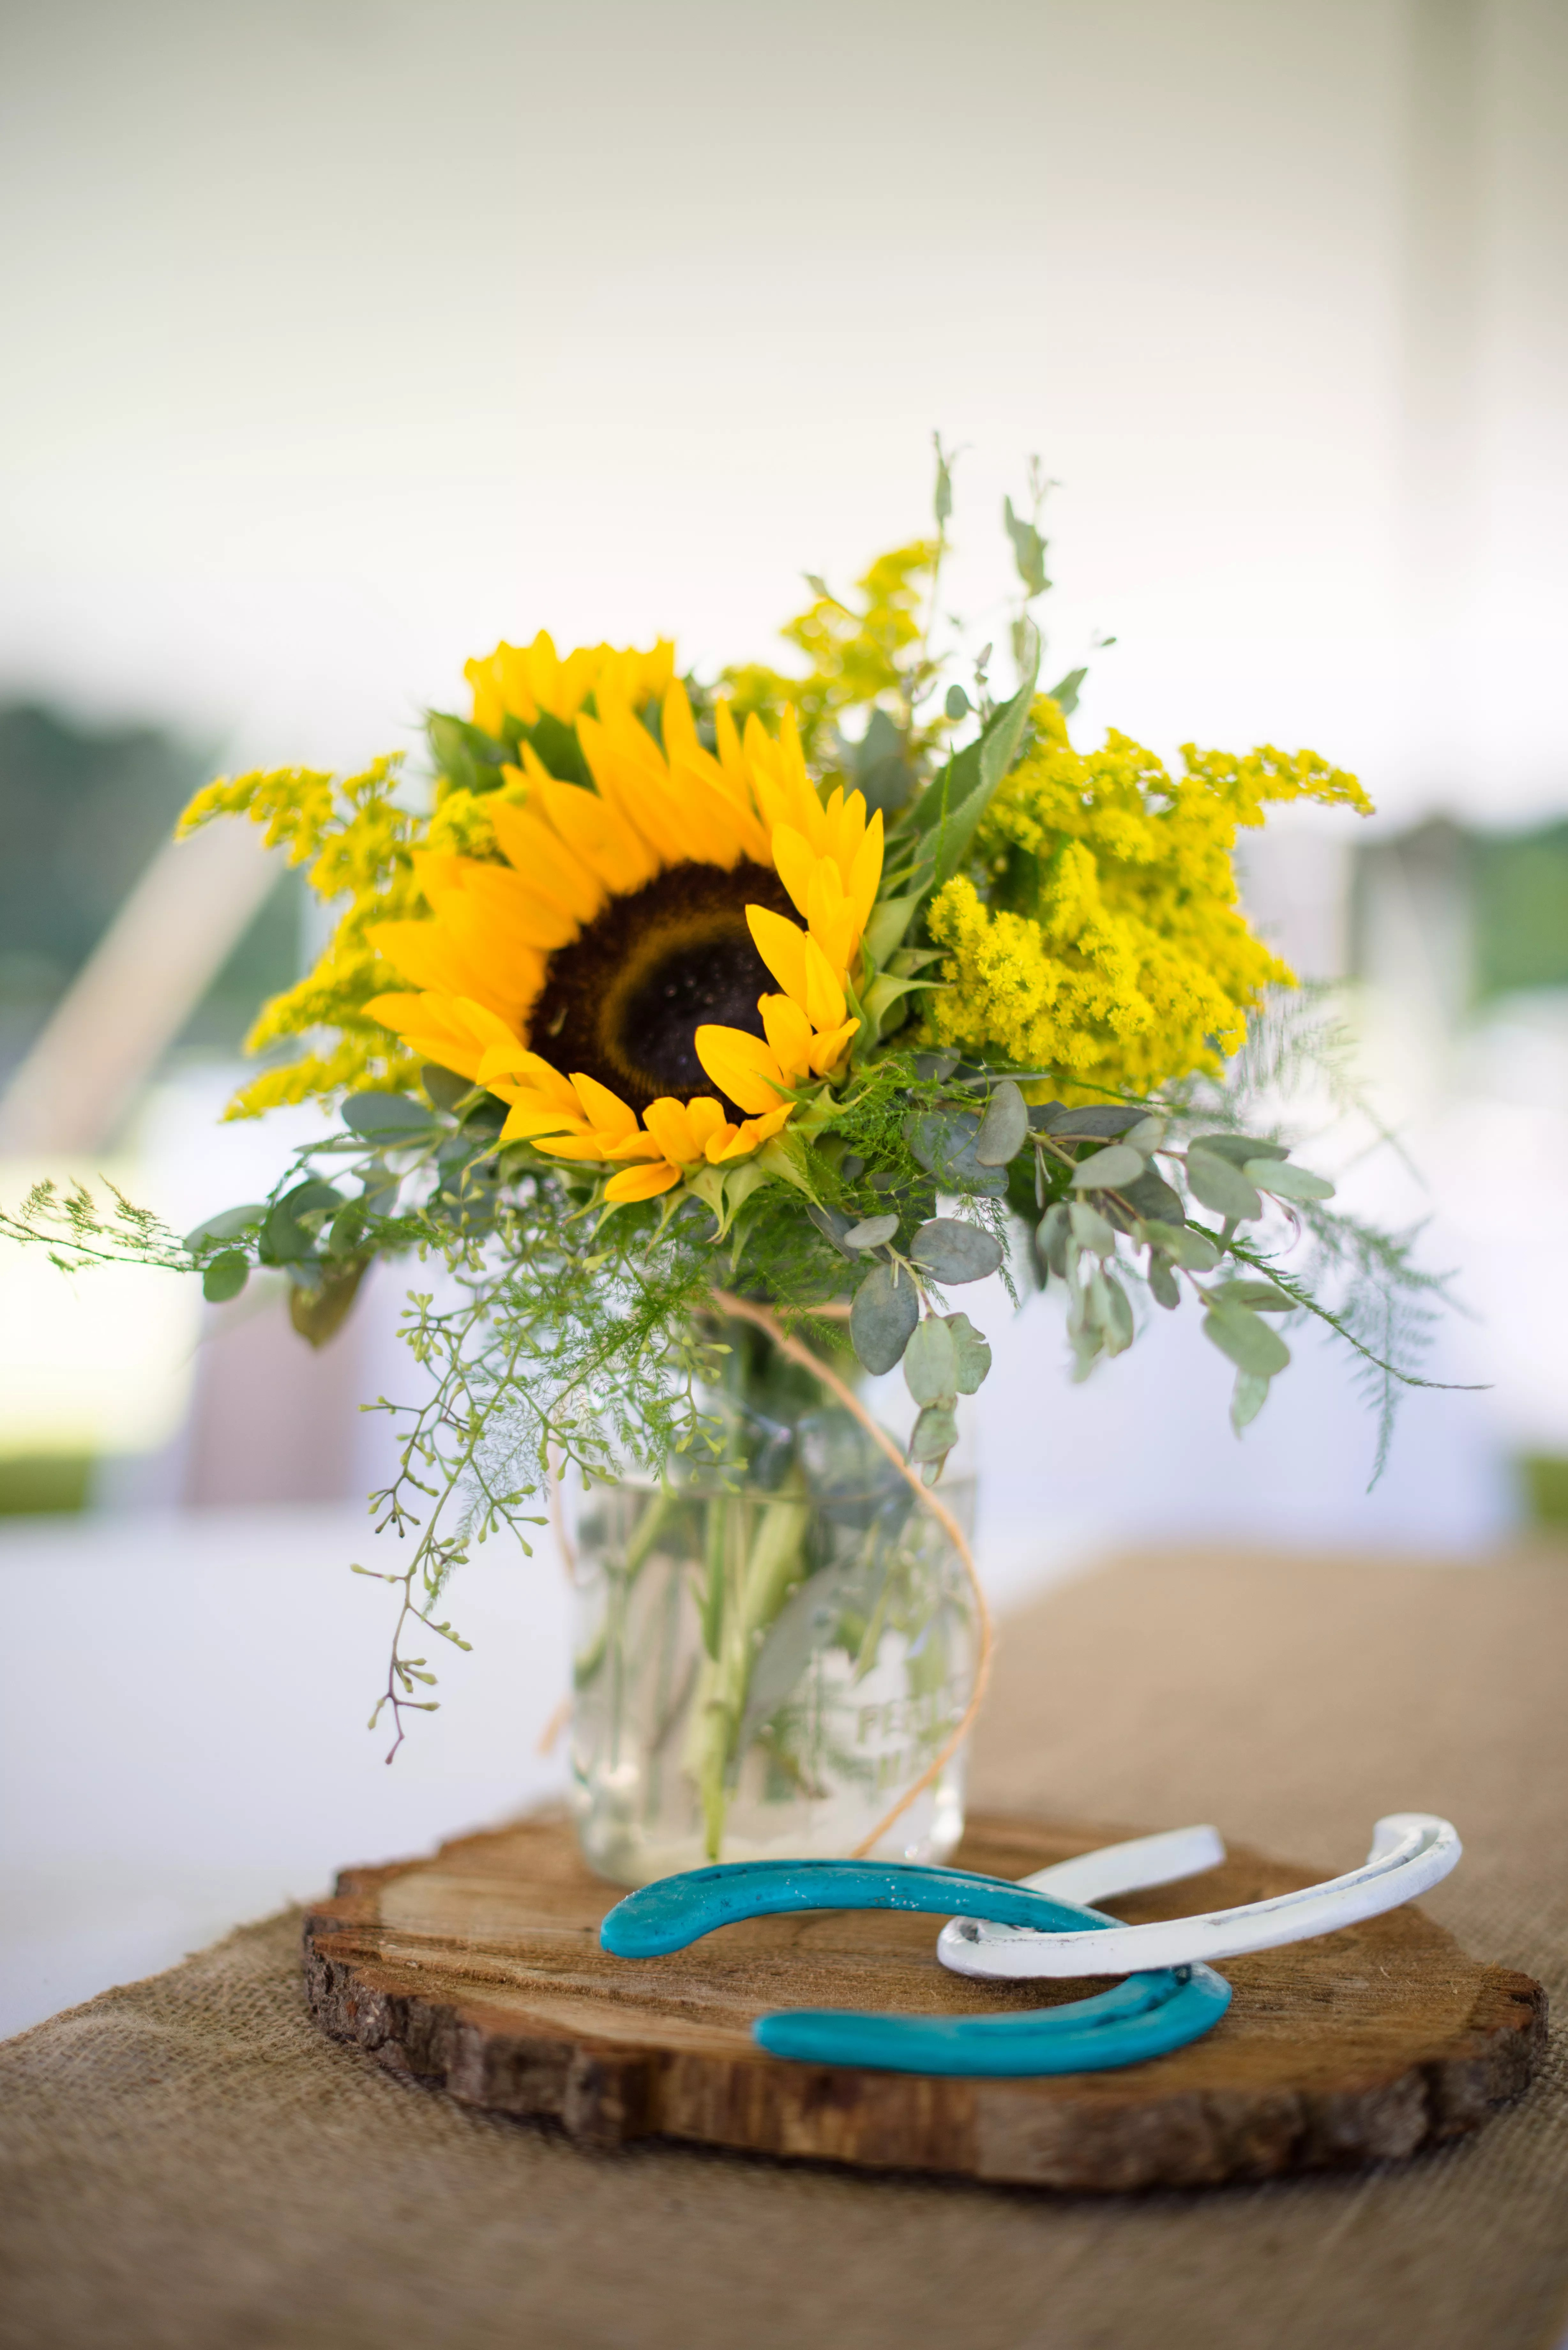 Centerpieces of Sunflowers in Mason Jars on Wood Slabs